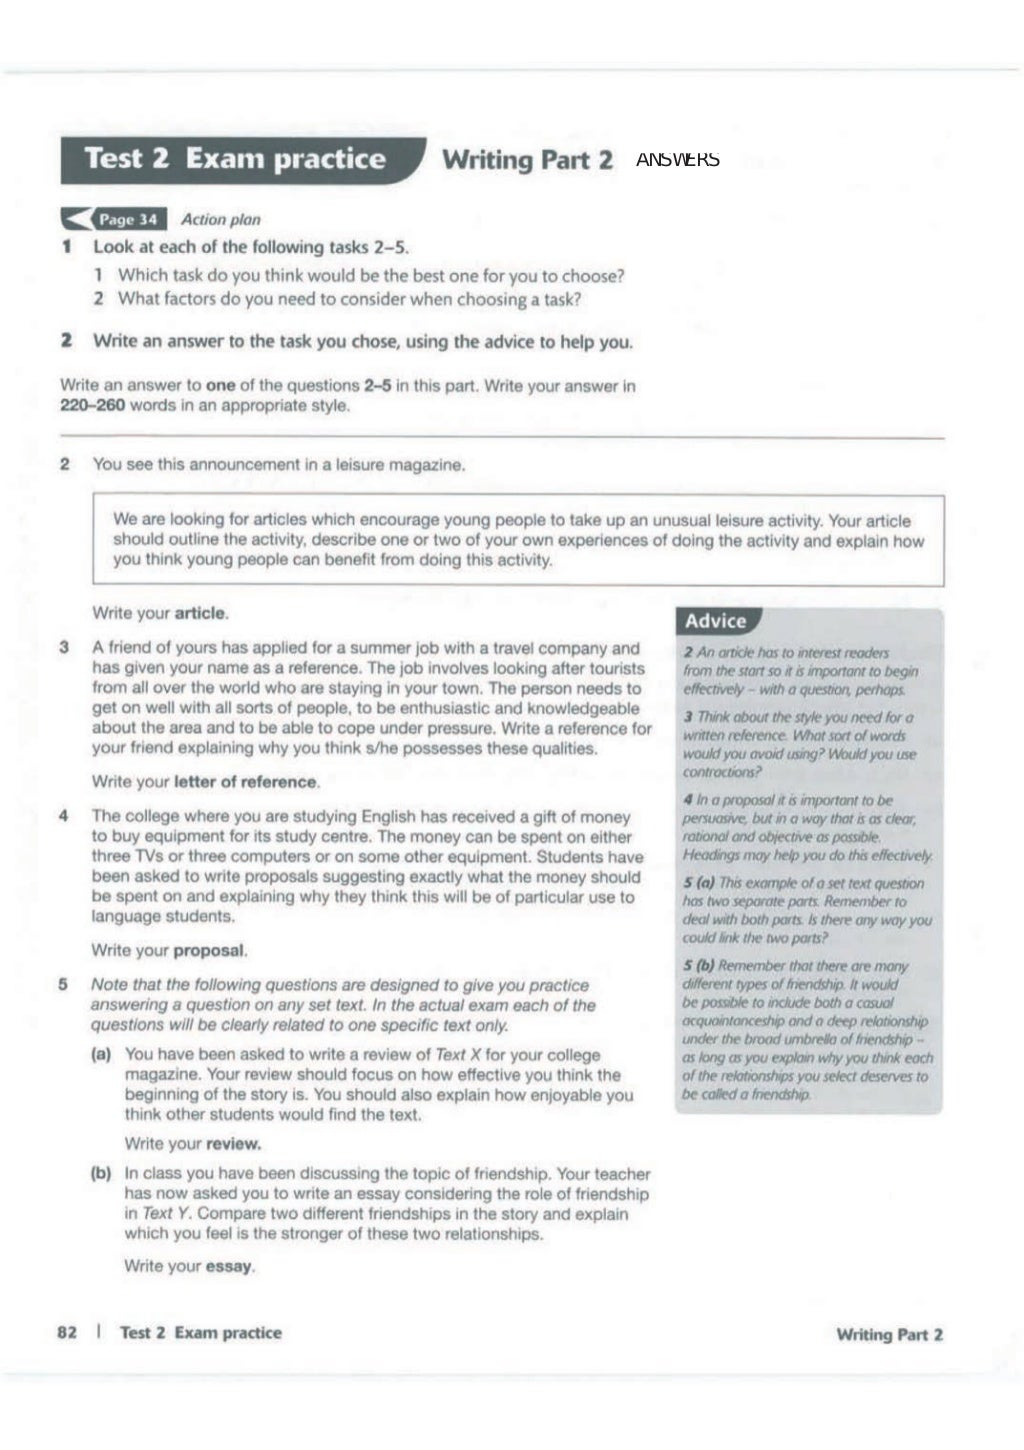 Advanced trainer 6 practice tests with answers book4joy (1) page 83